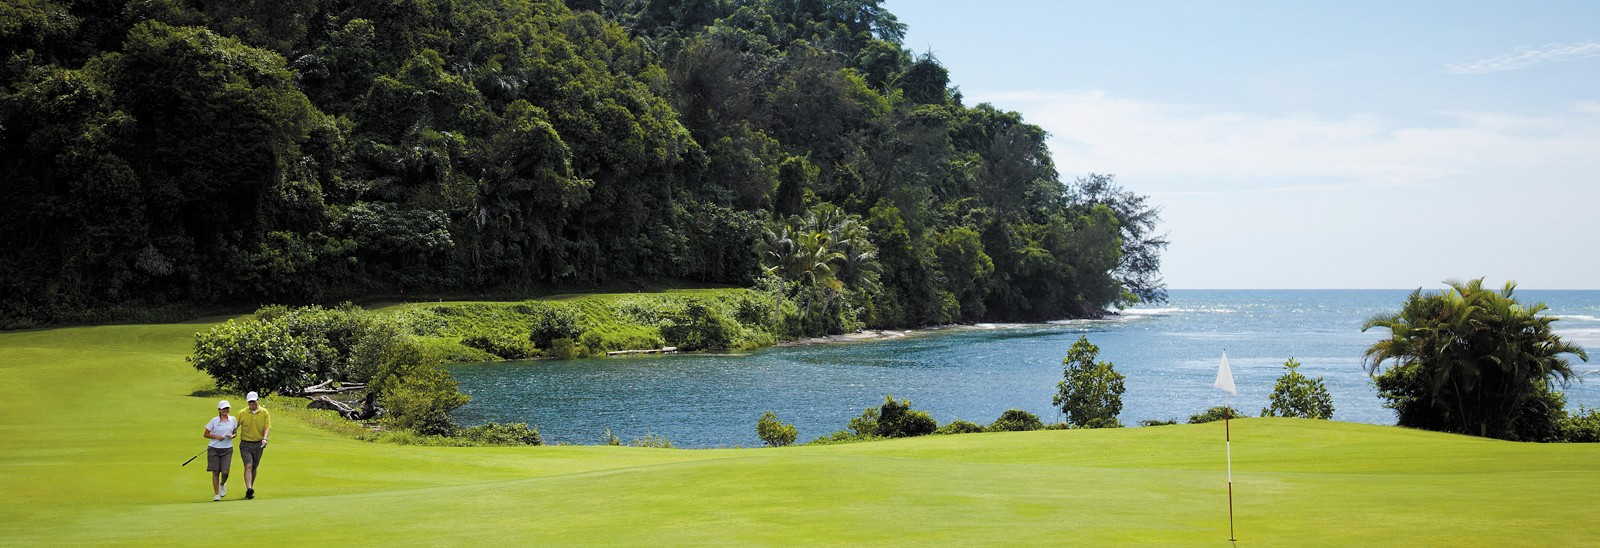 The top 10 golf courses in Asia